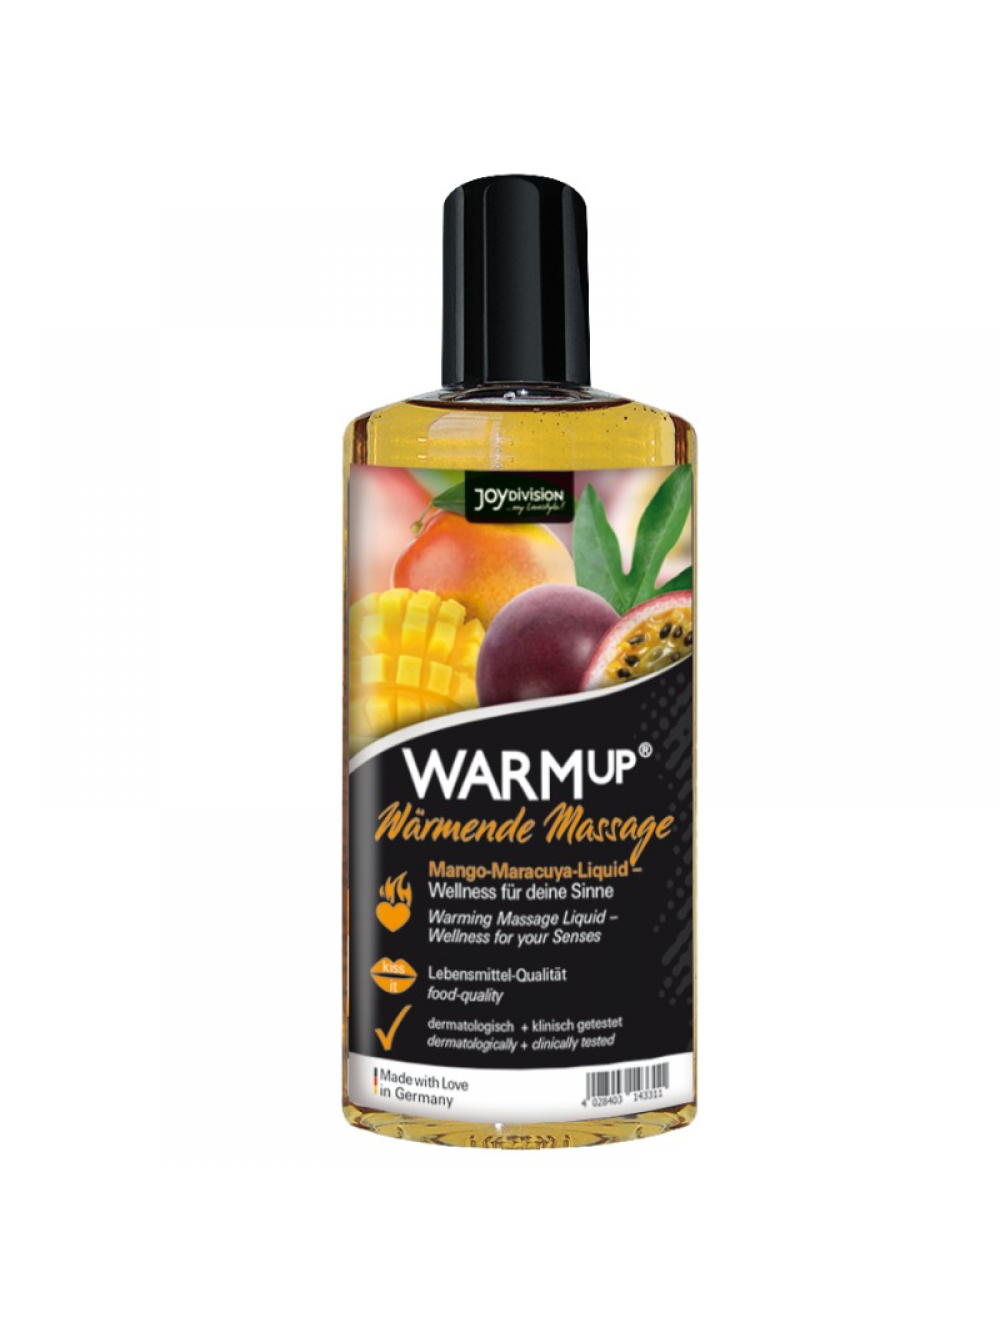 WARMUP MANGO AND MARACUYA MASSAGE OIL 150 ML